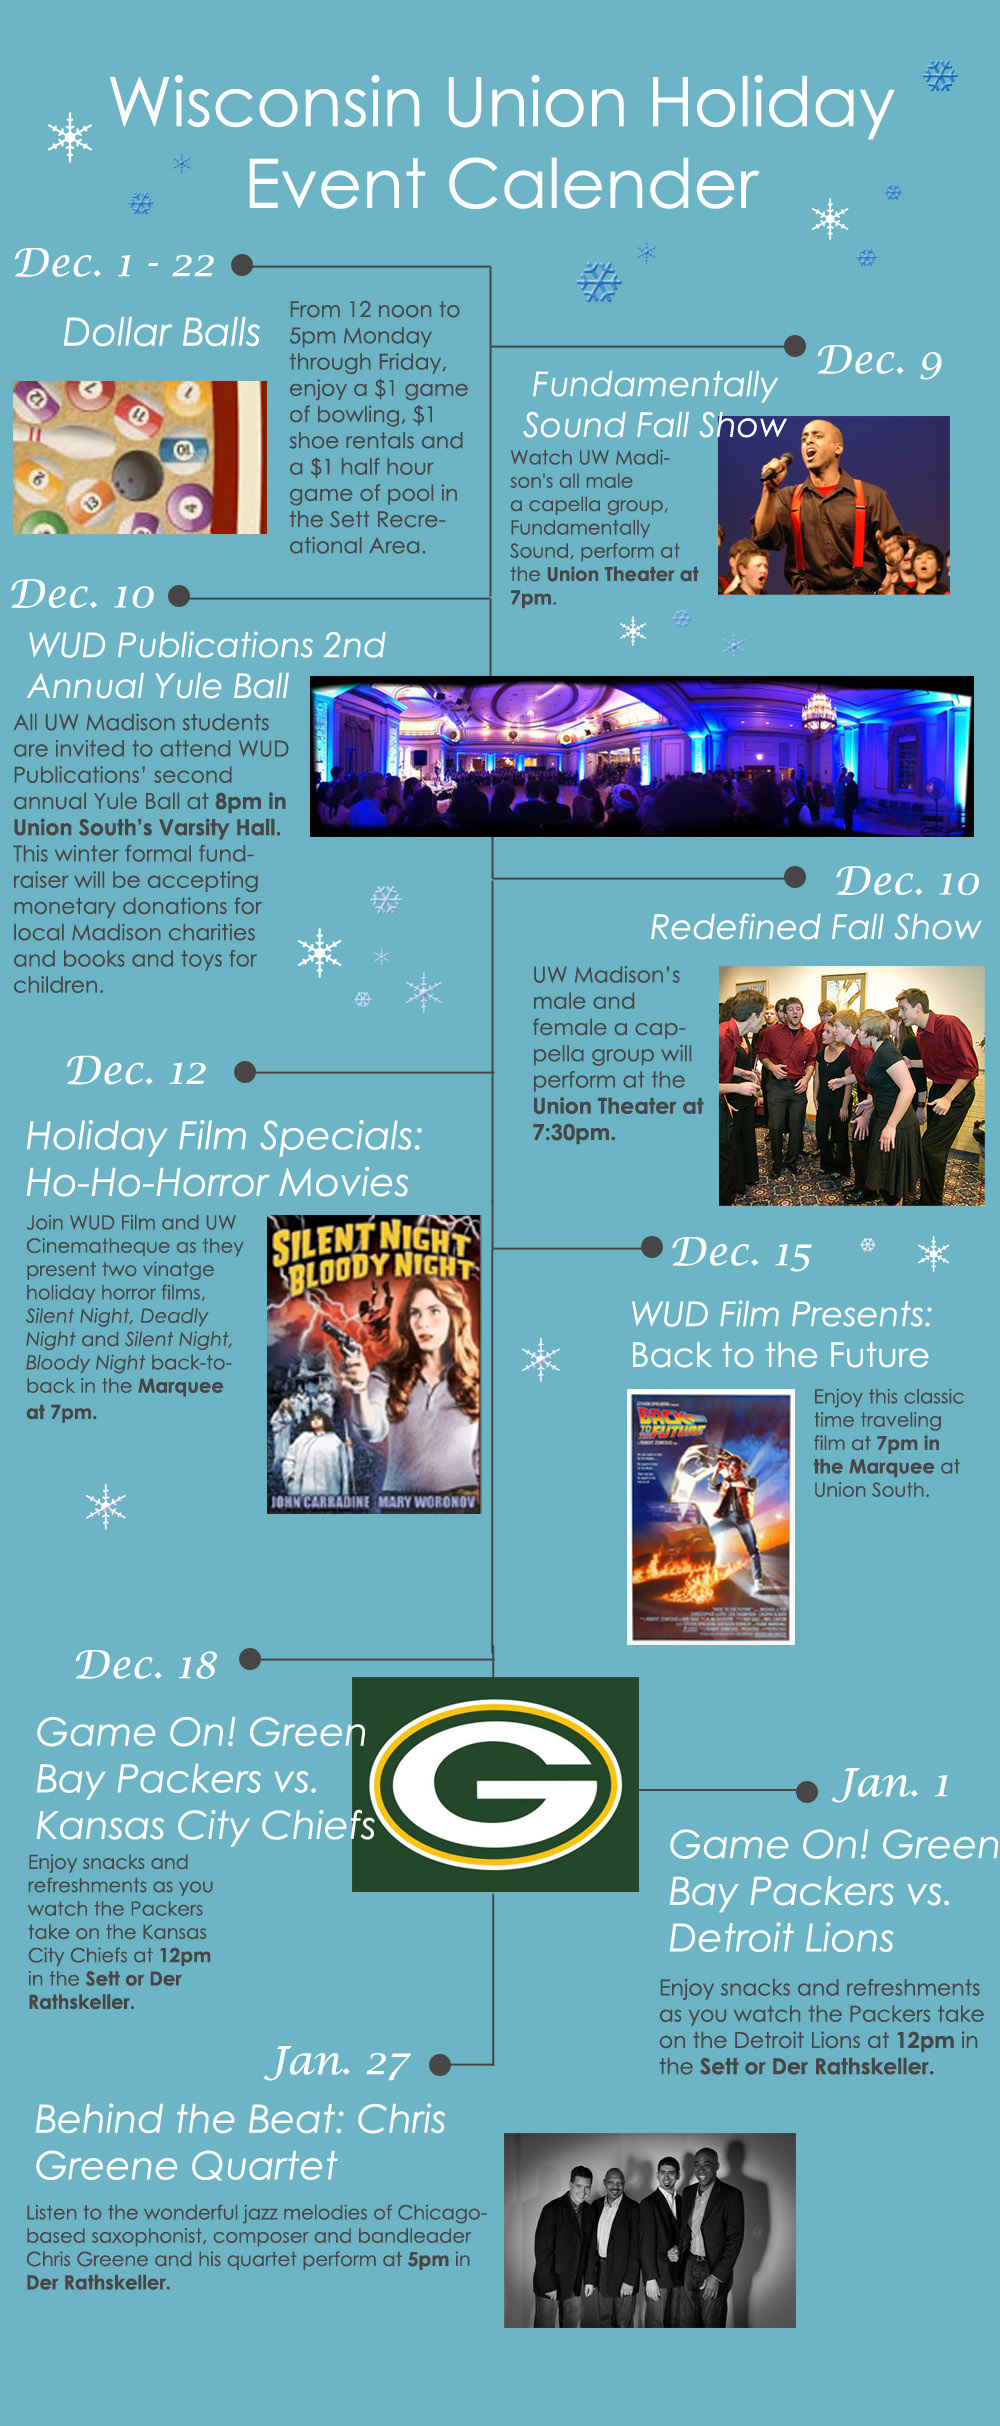 Concerts, movies & more on our holiday event calendar!